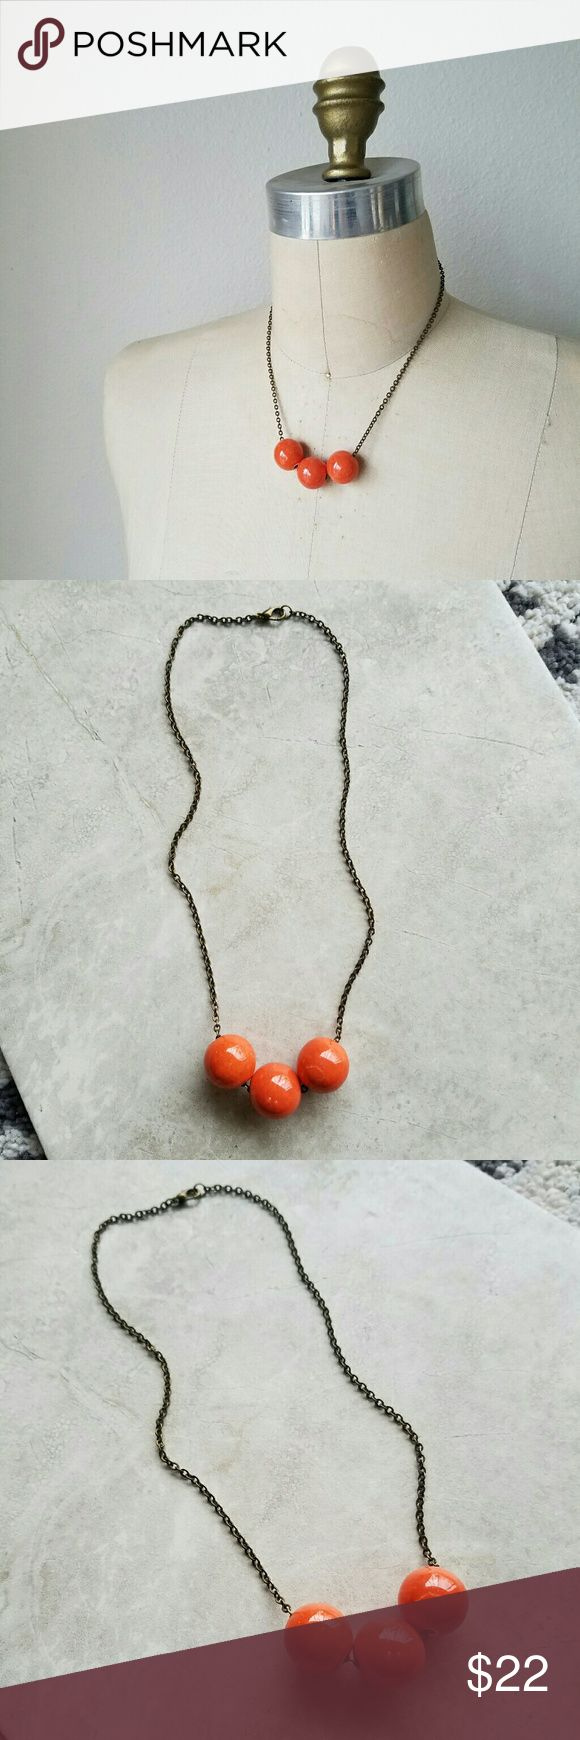 """Bubble Necklace A fun pop of color! Bright coral glazed ceramic beads on antiqued brass chain.  Necklace measures 18"""" around.  **Handmade in California. Anthro used for exposure. Anthropologie Jewelry Necklaces"""